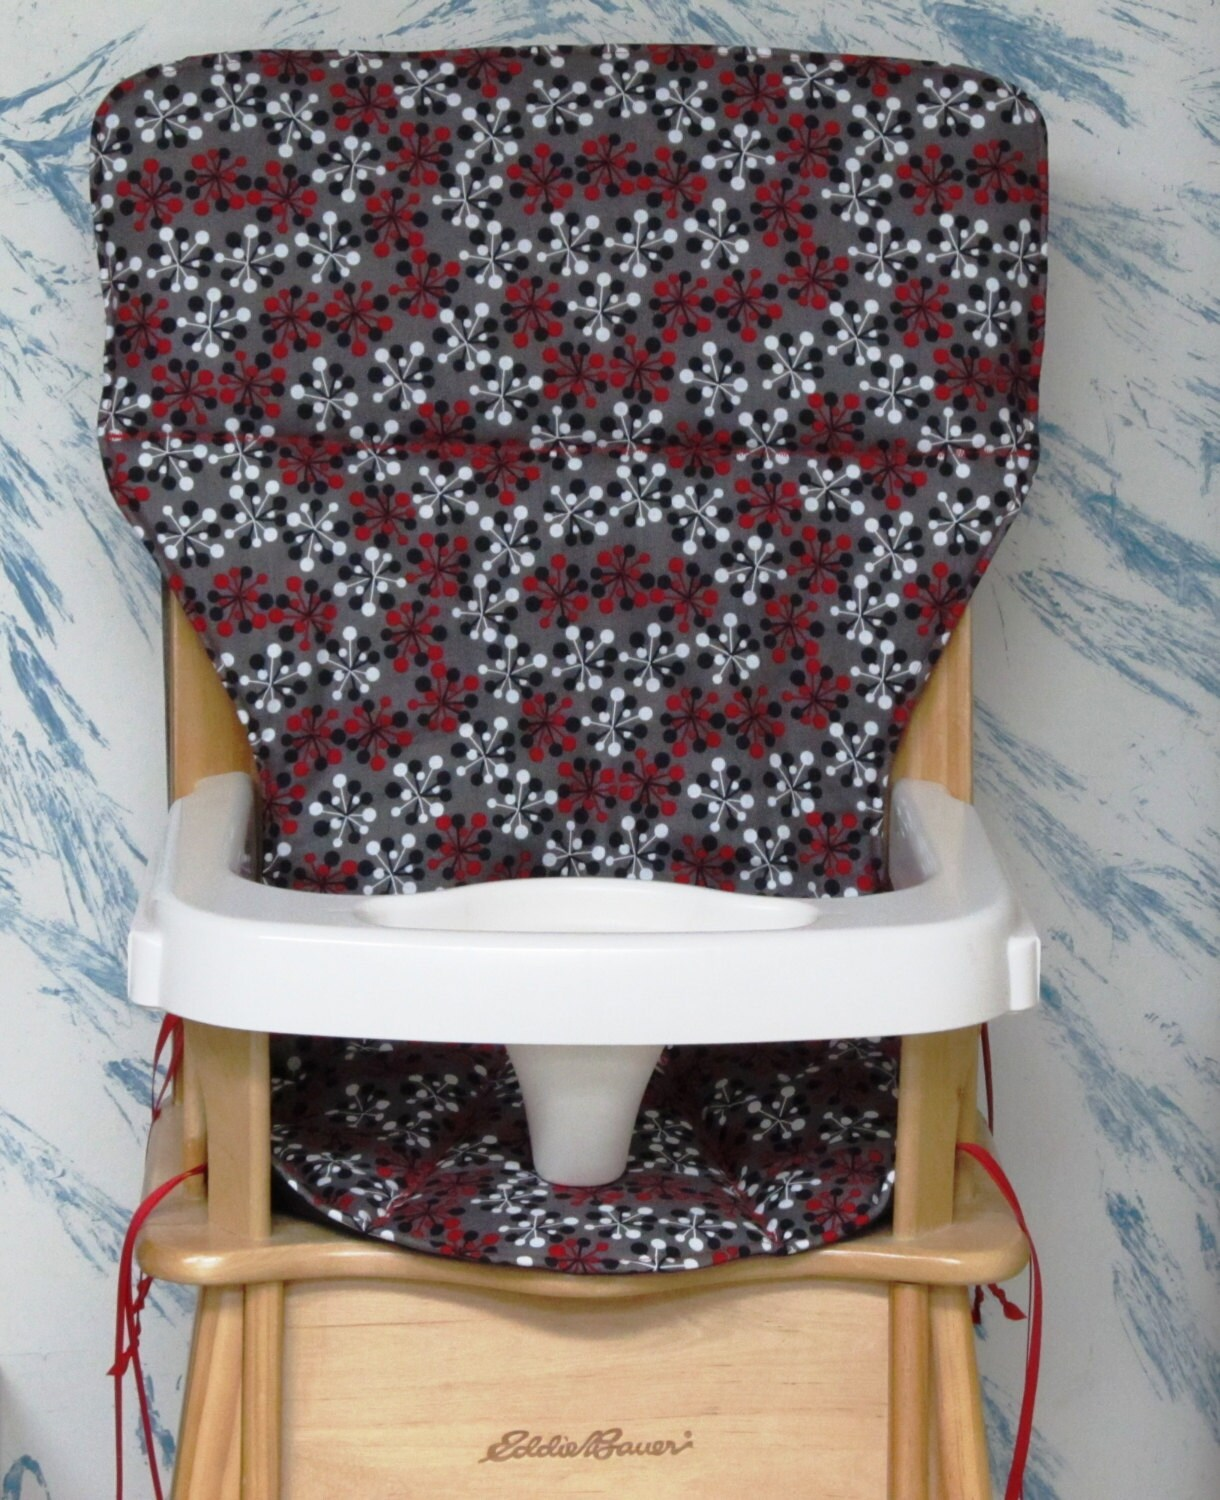 eddie bauer high chairs best booster chair for 2 year old cover replacement pad red by